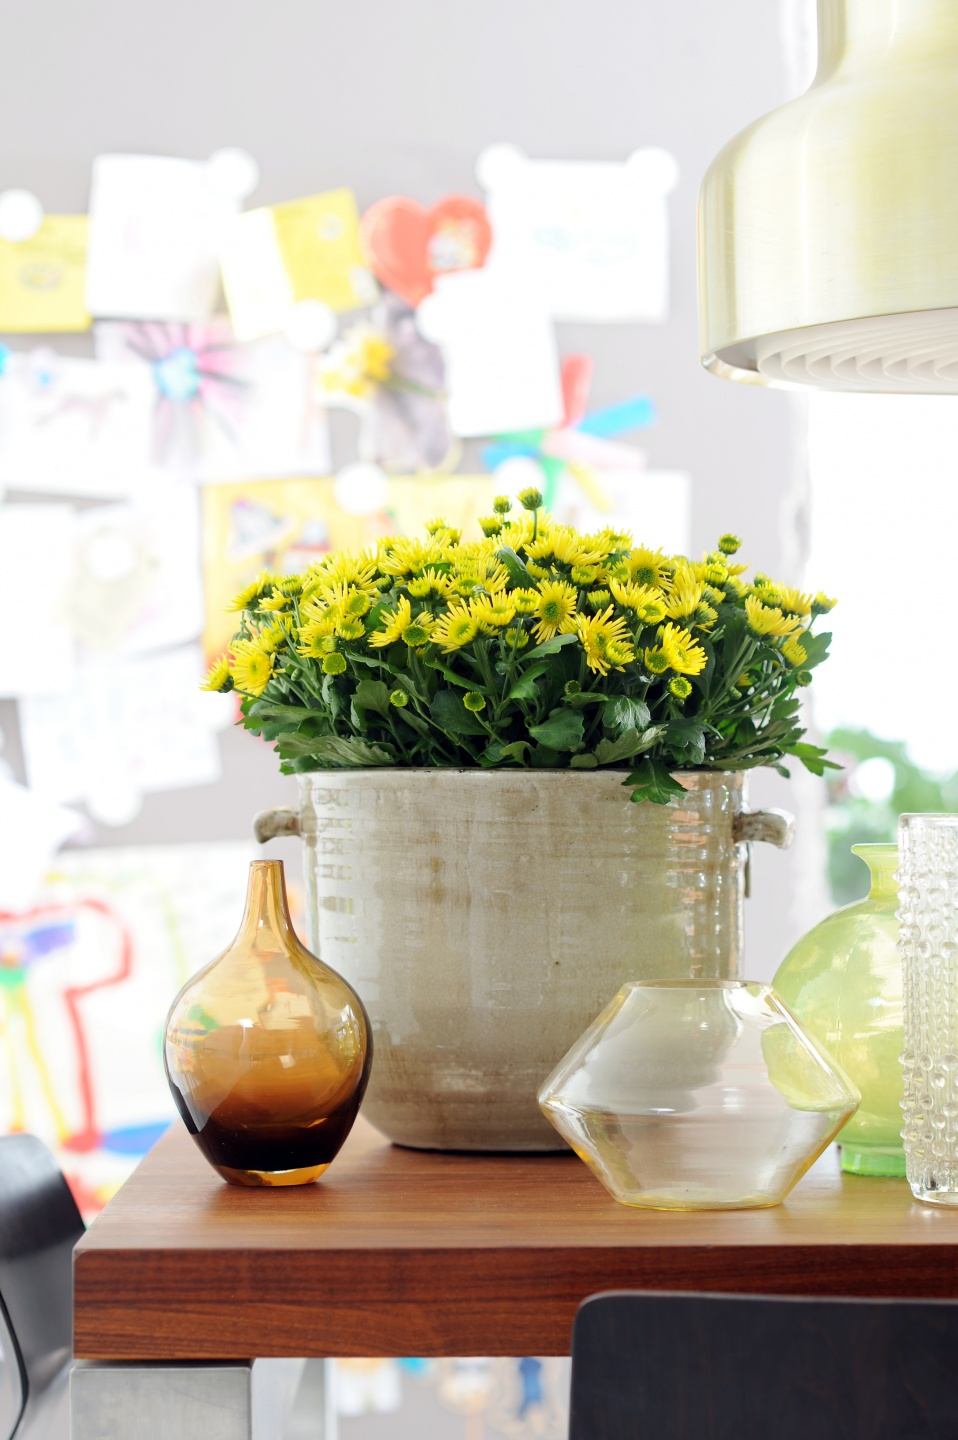 how to take care of chrysanthemum